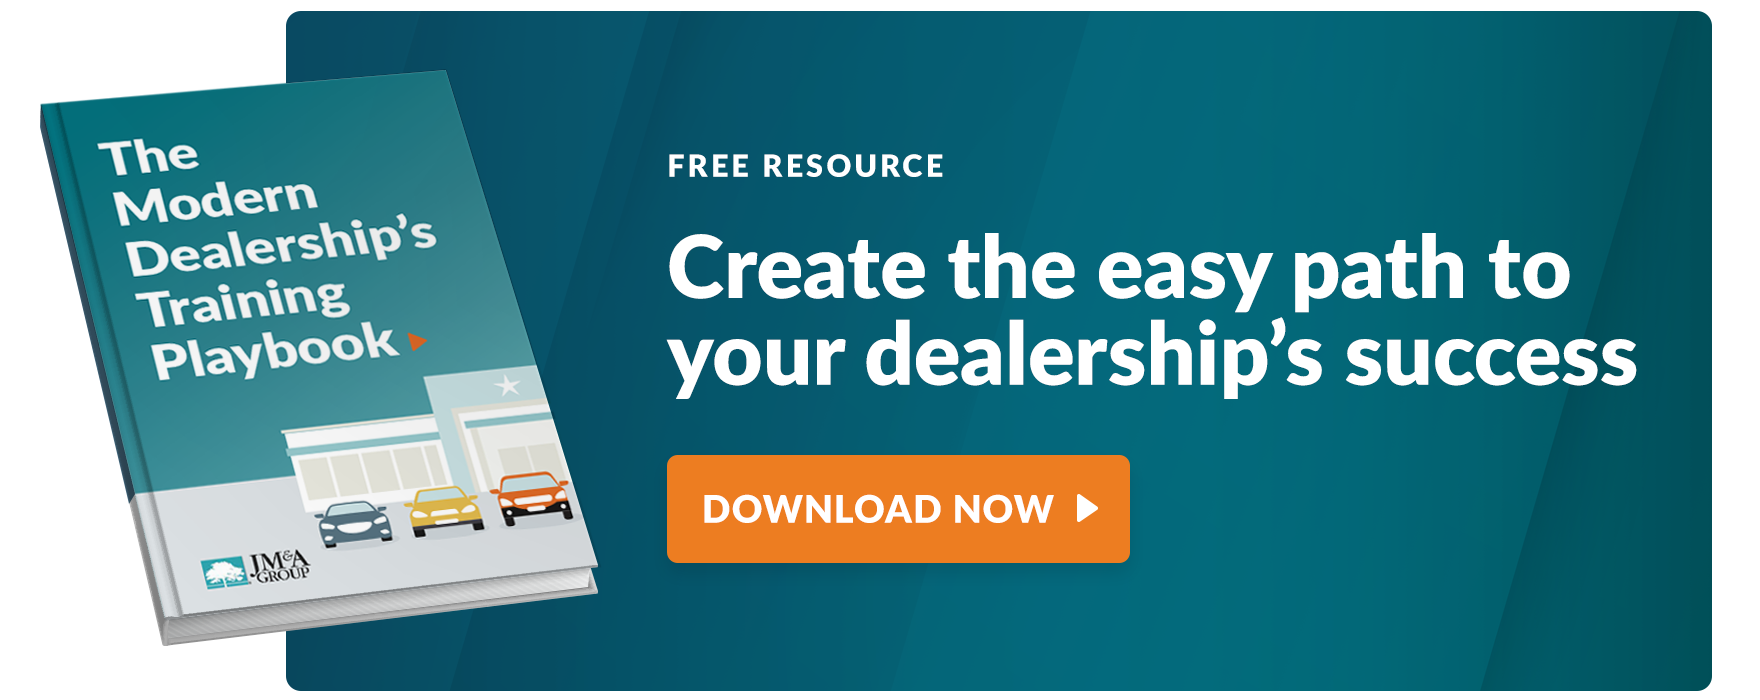 Create the easy path to your dealerships success - download now